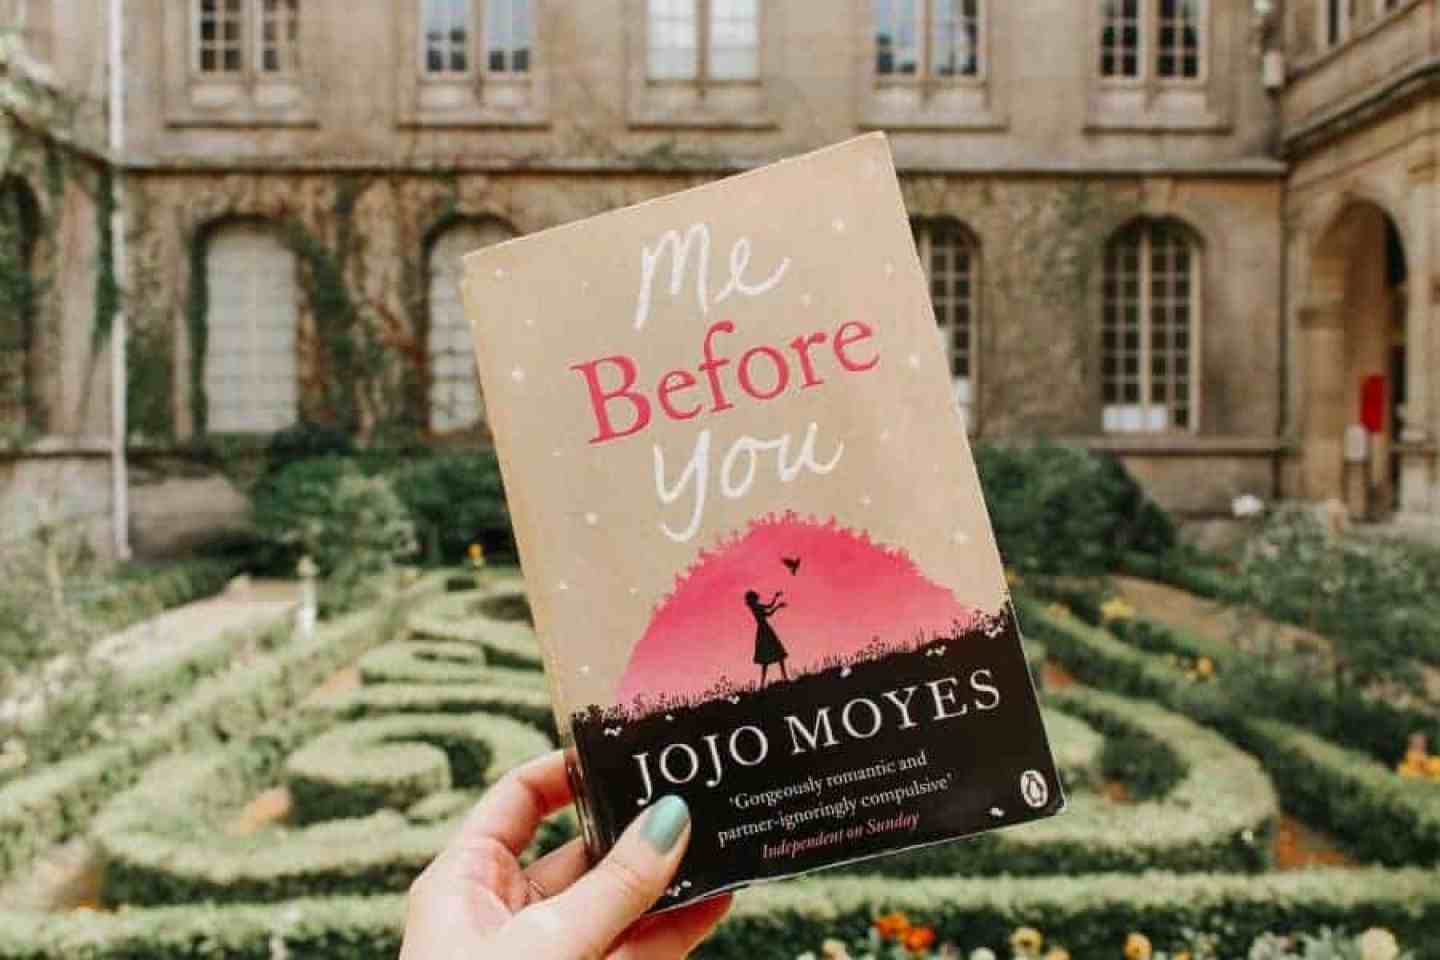 A Guide to the Paris Scenes in Me Before You by Jojo Moyes